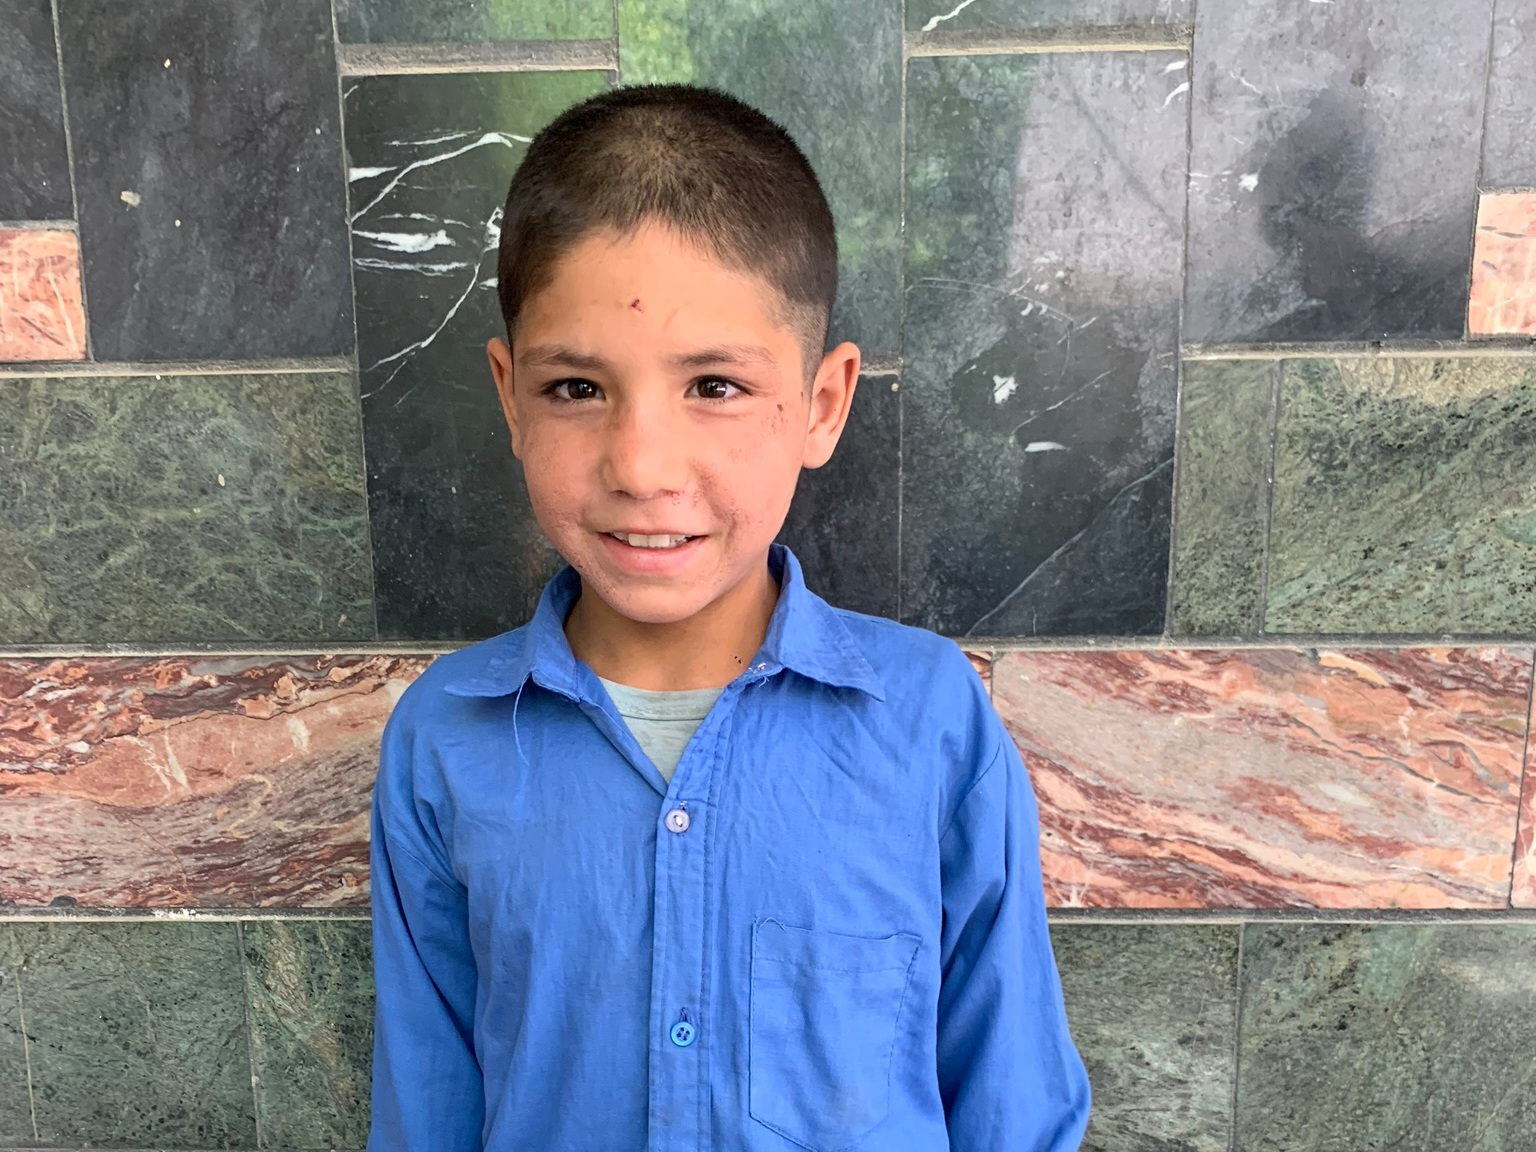 Mustafa, Age 9 - Mustafa has 6 siblings. His mother does not have work at this time. His father is a cook.BE MUSTAFA'S PARTNER>